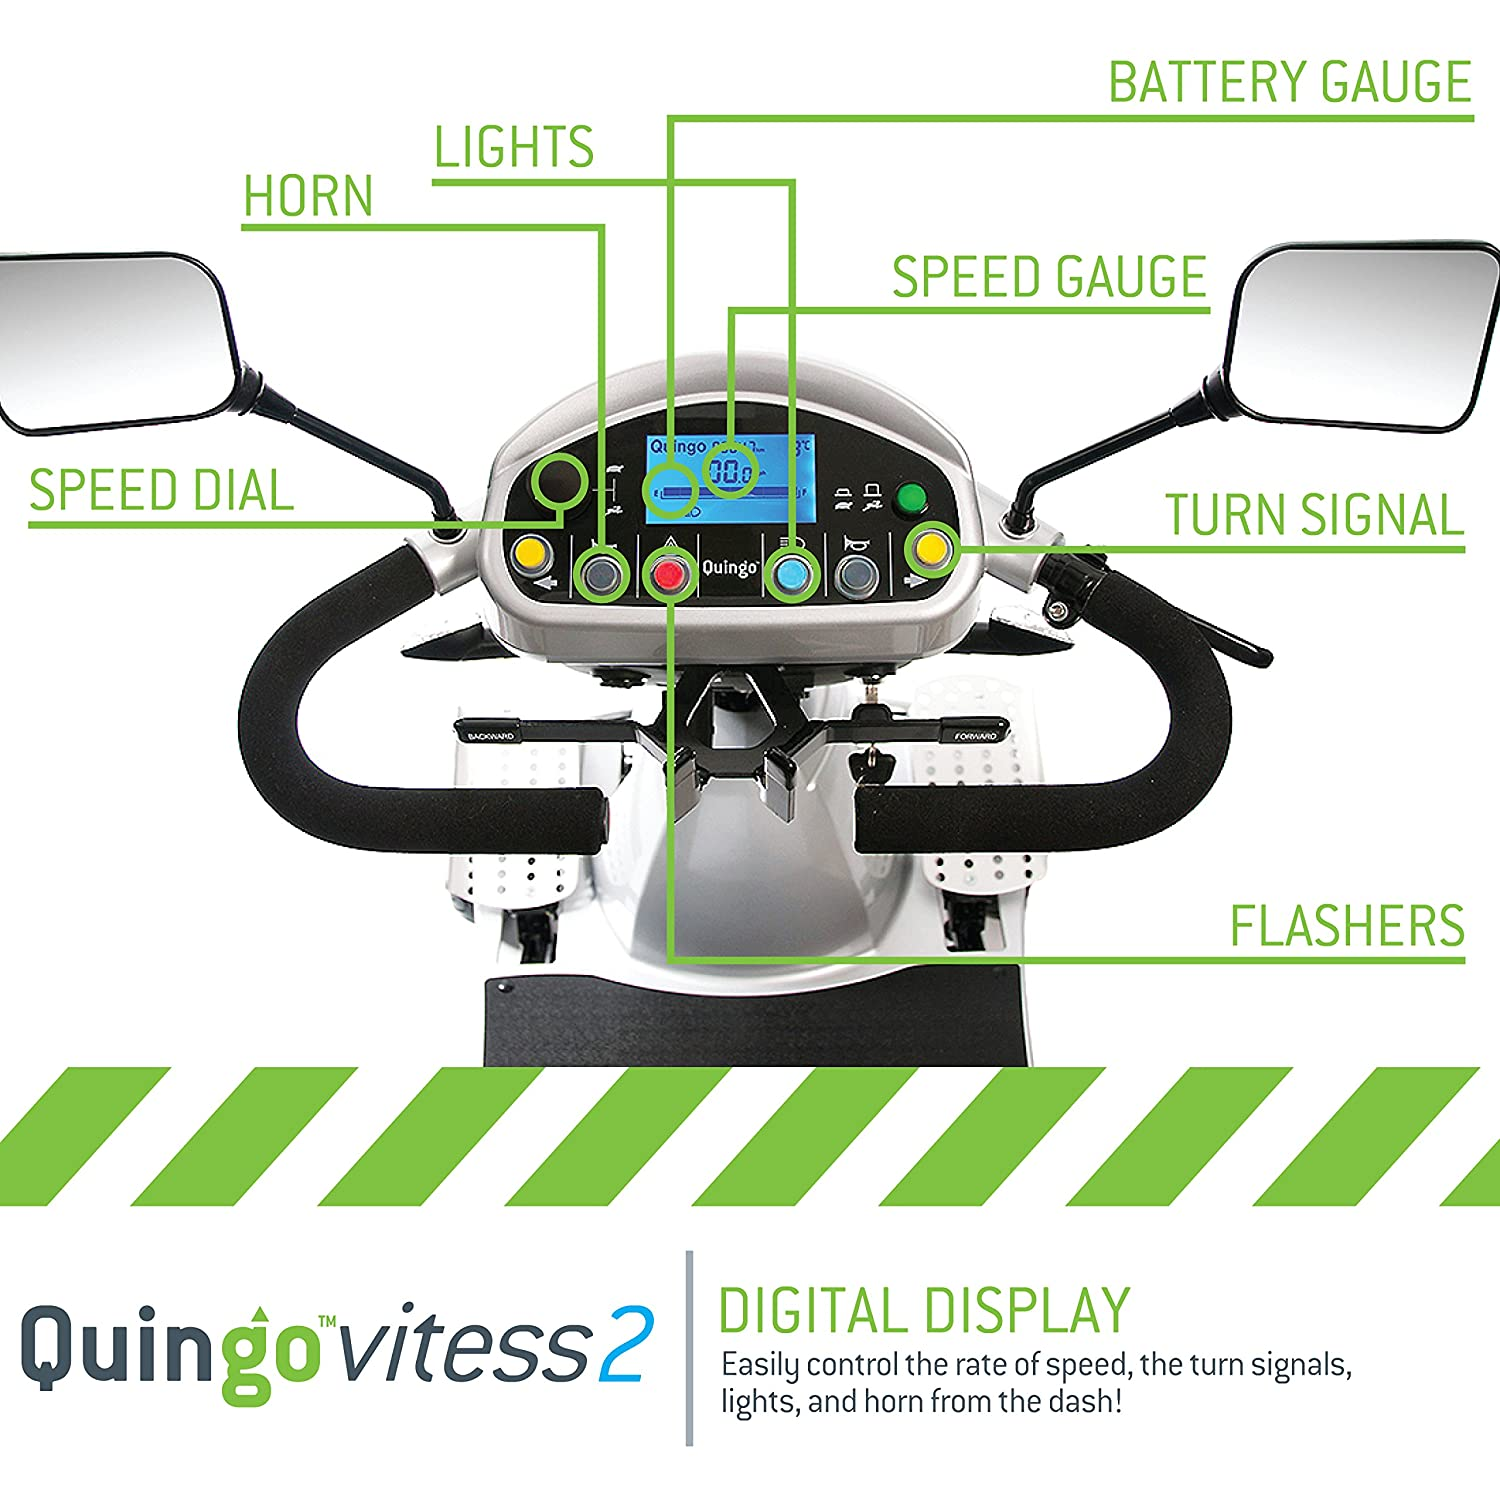 Amazon.com: Quingo Vitess 2 Mobility Scooter with 5 Wheel Anti-Tip Stability System; Most Luxurious, Advanced and Powerful Model Perfect for Any Terrain for ...